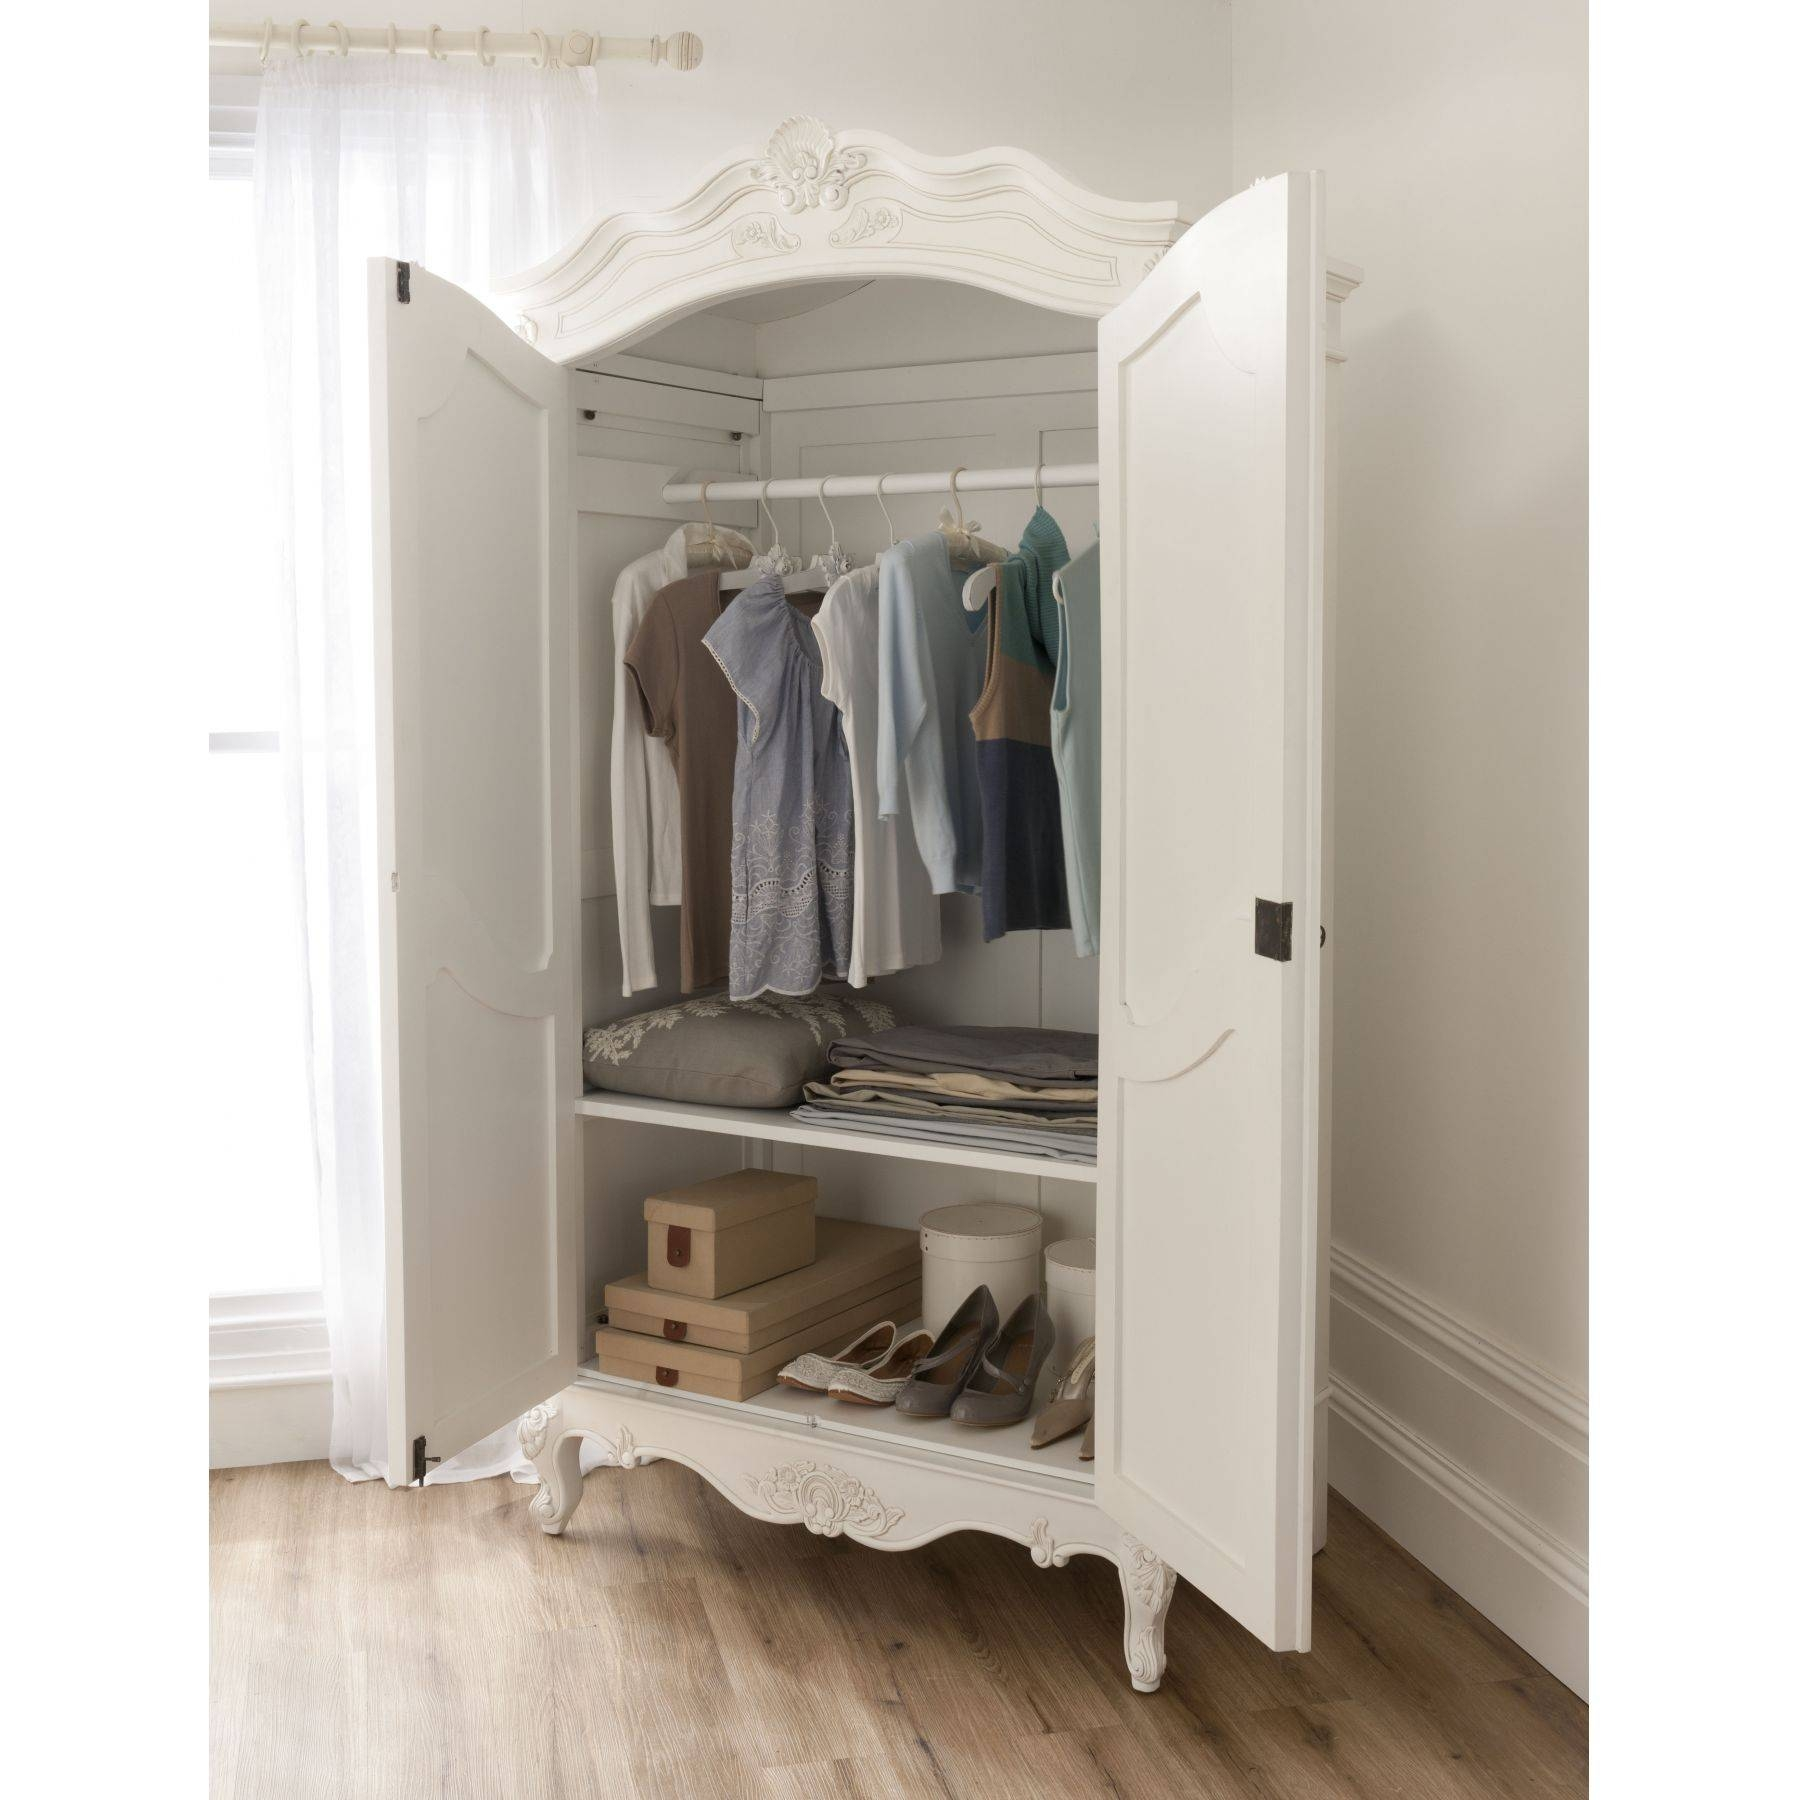 Baroque Antique French Wardrobe Is Available Online From regarding French White Wardrobes (Image 3 of 15)